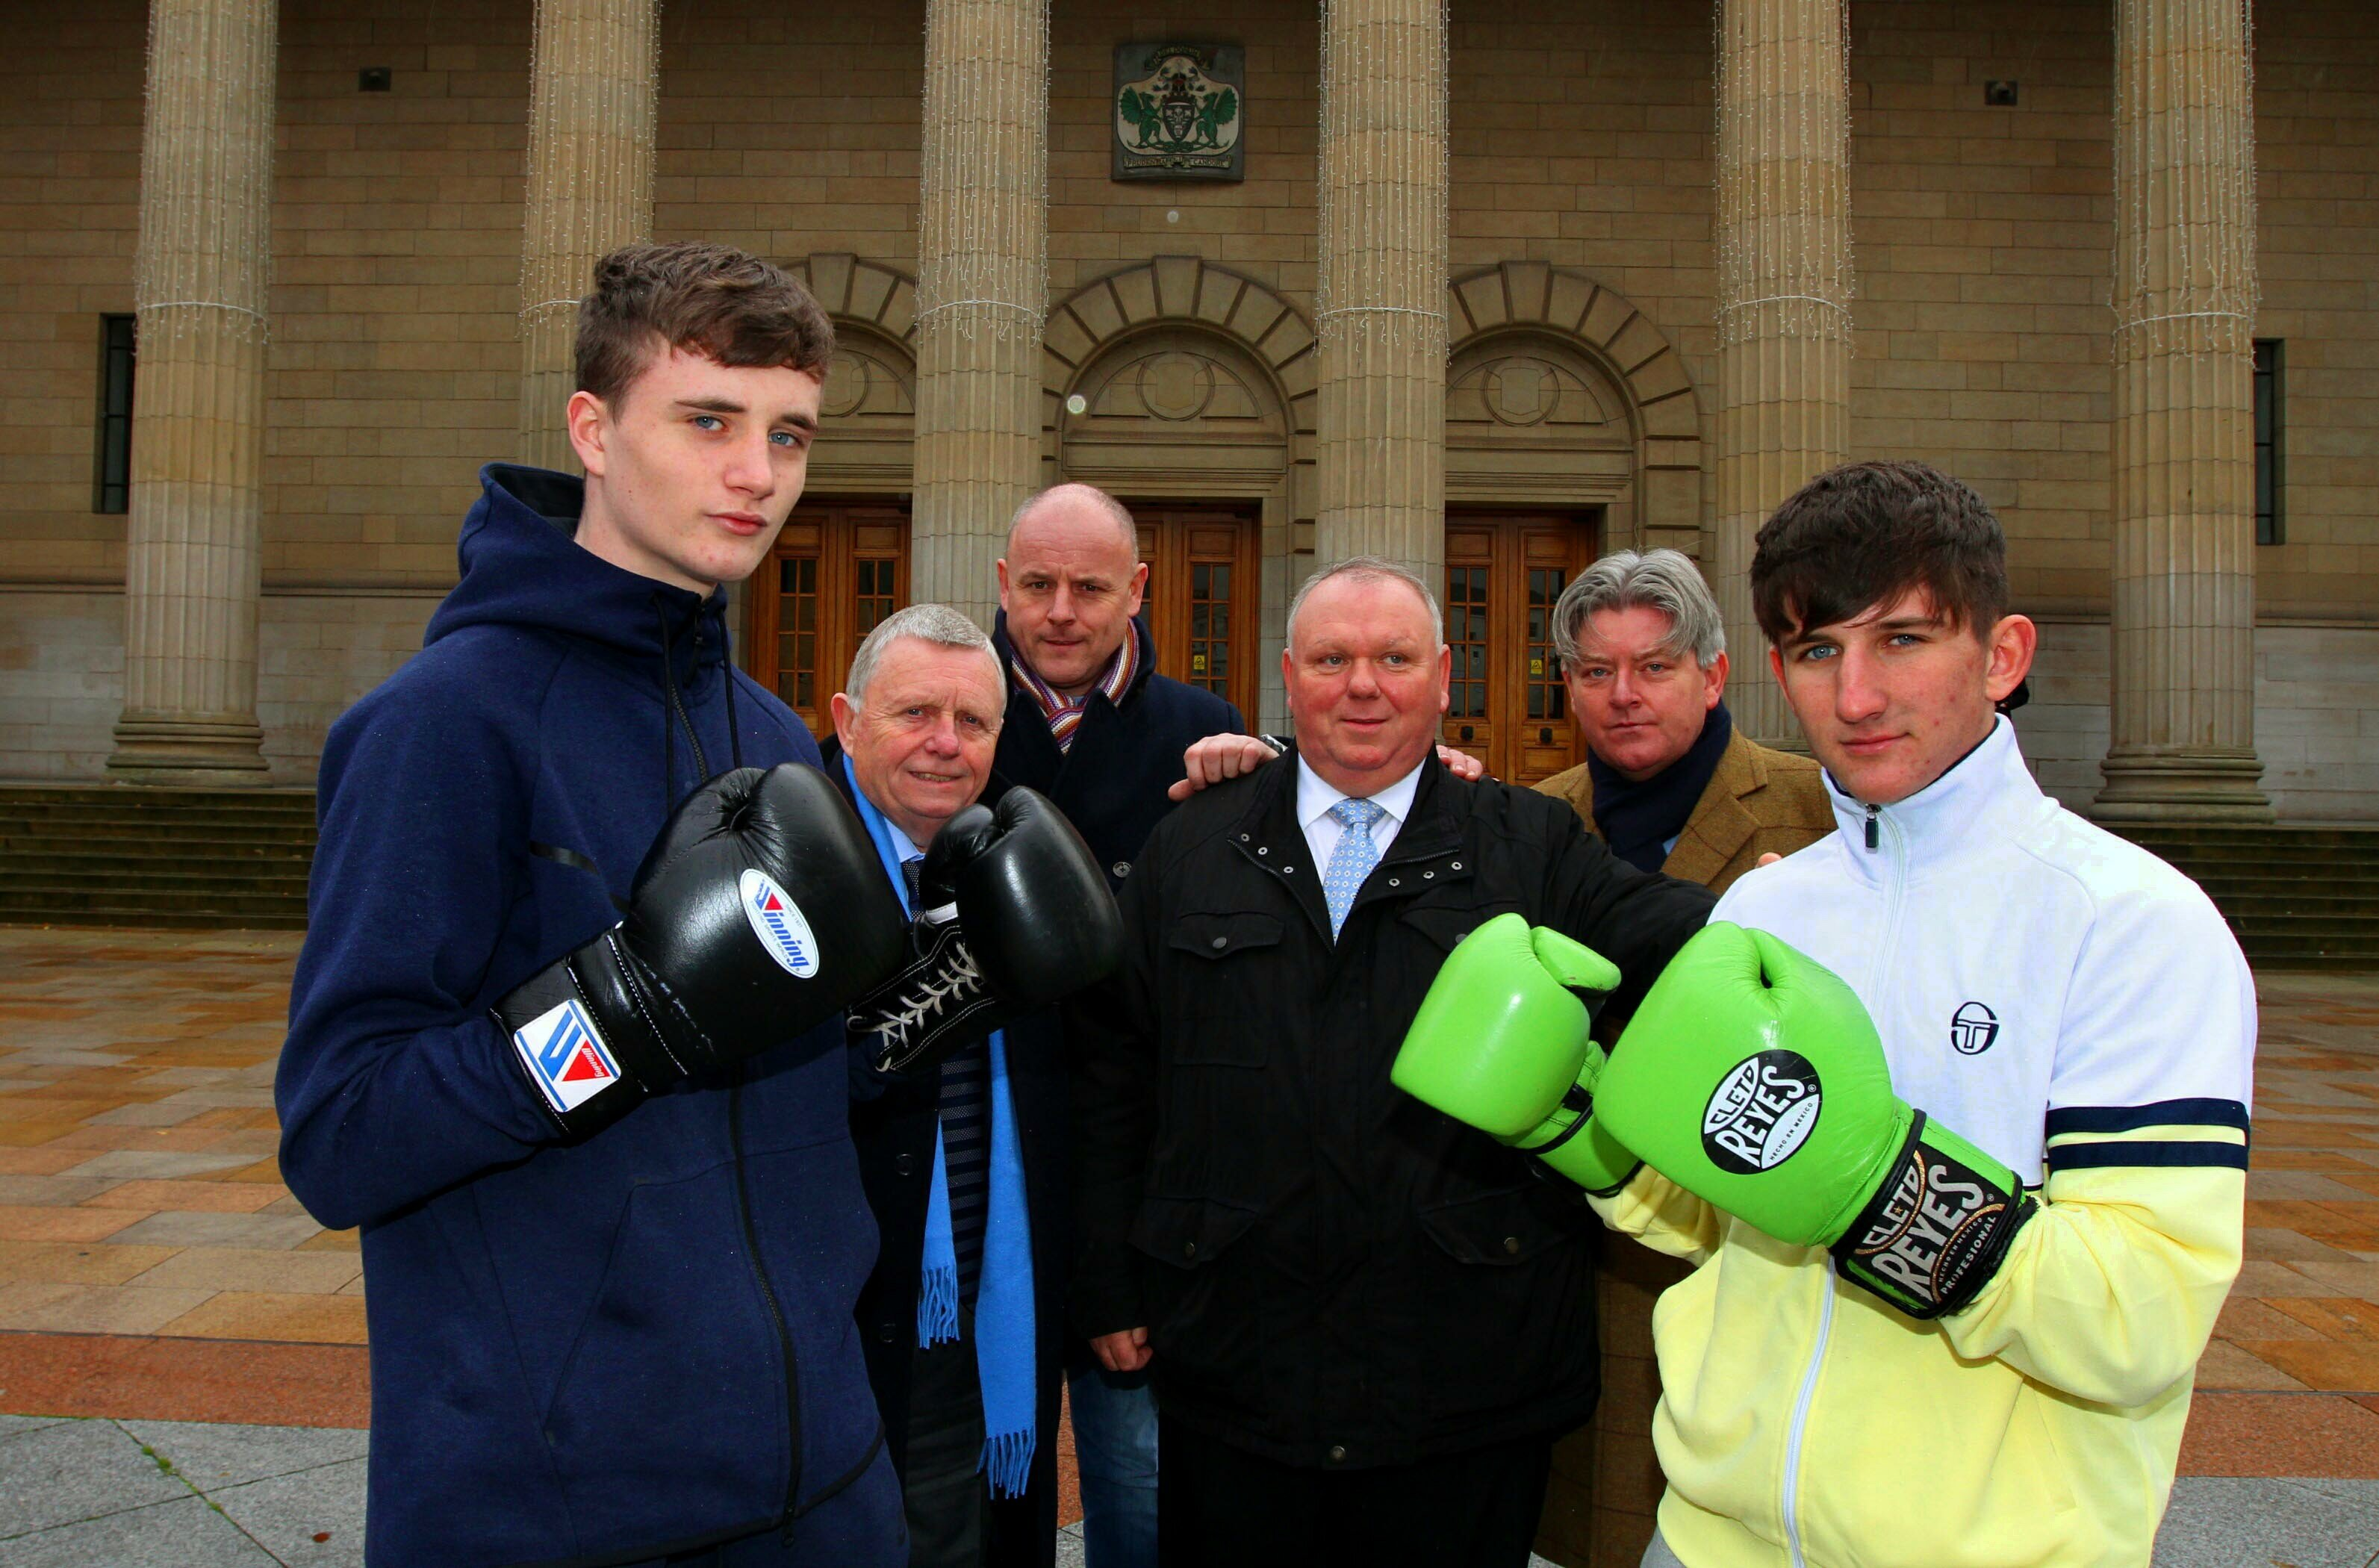 Evening Telegraph News-Caird hall boxing,picture shows, at the launch of the Scotland v England boxing match at Caird Hall Dundee raising funds in the name of Mike Towell are boxers Sam Hickey and Charlie Doig ( who will be fighting on the night), Joe Duffy (St Francis boxing club),Darren Hickey ( lochee boys boxing club), Jimmy Marr, and Sean McMahon (both St Francis boxing club), wednesday 9th november.